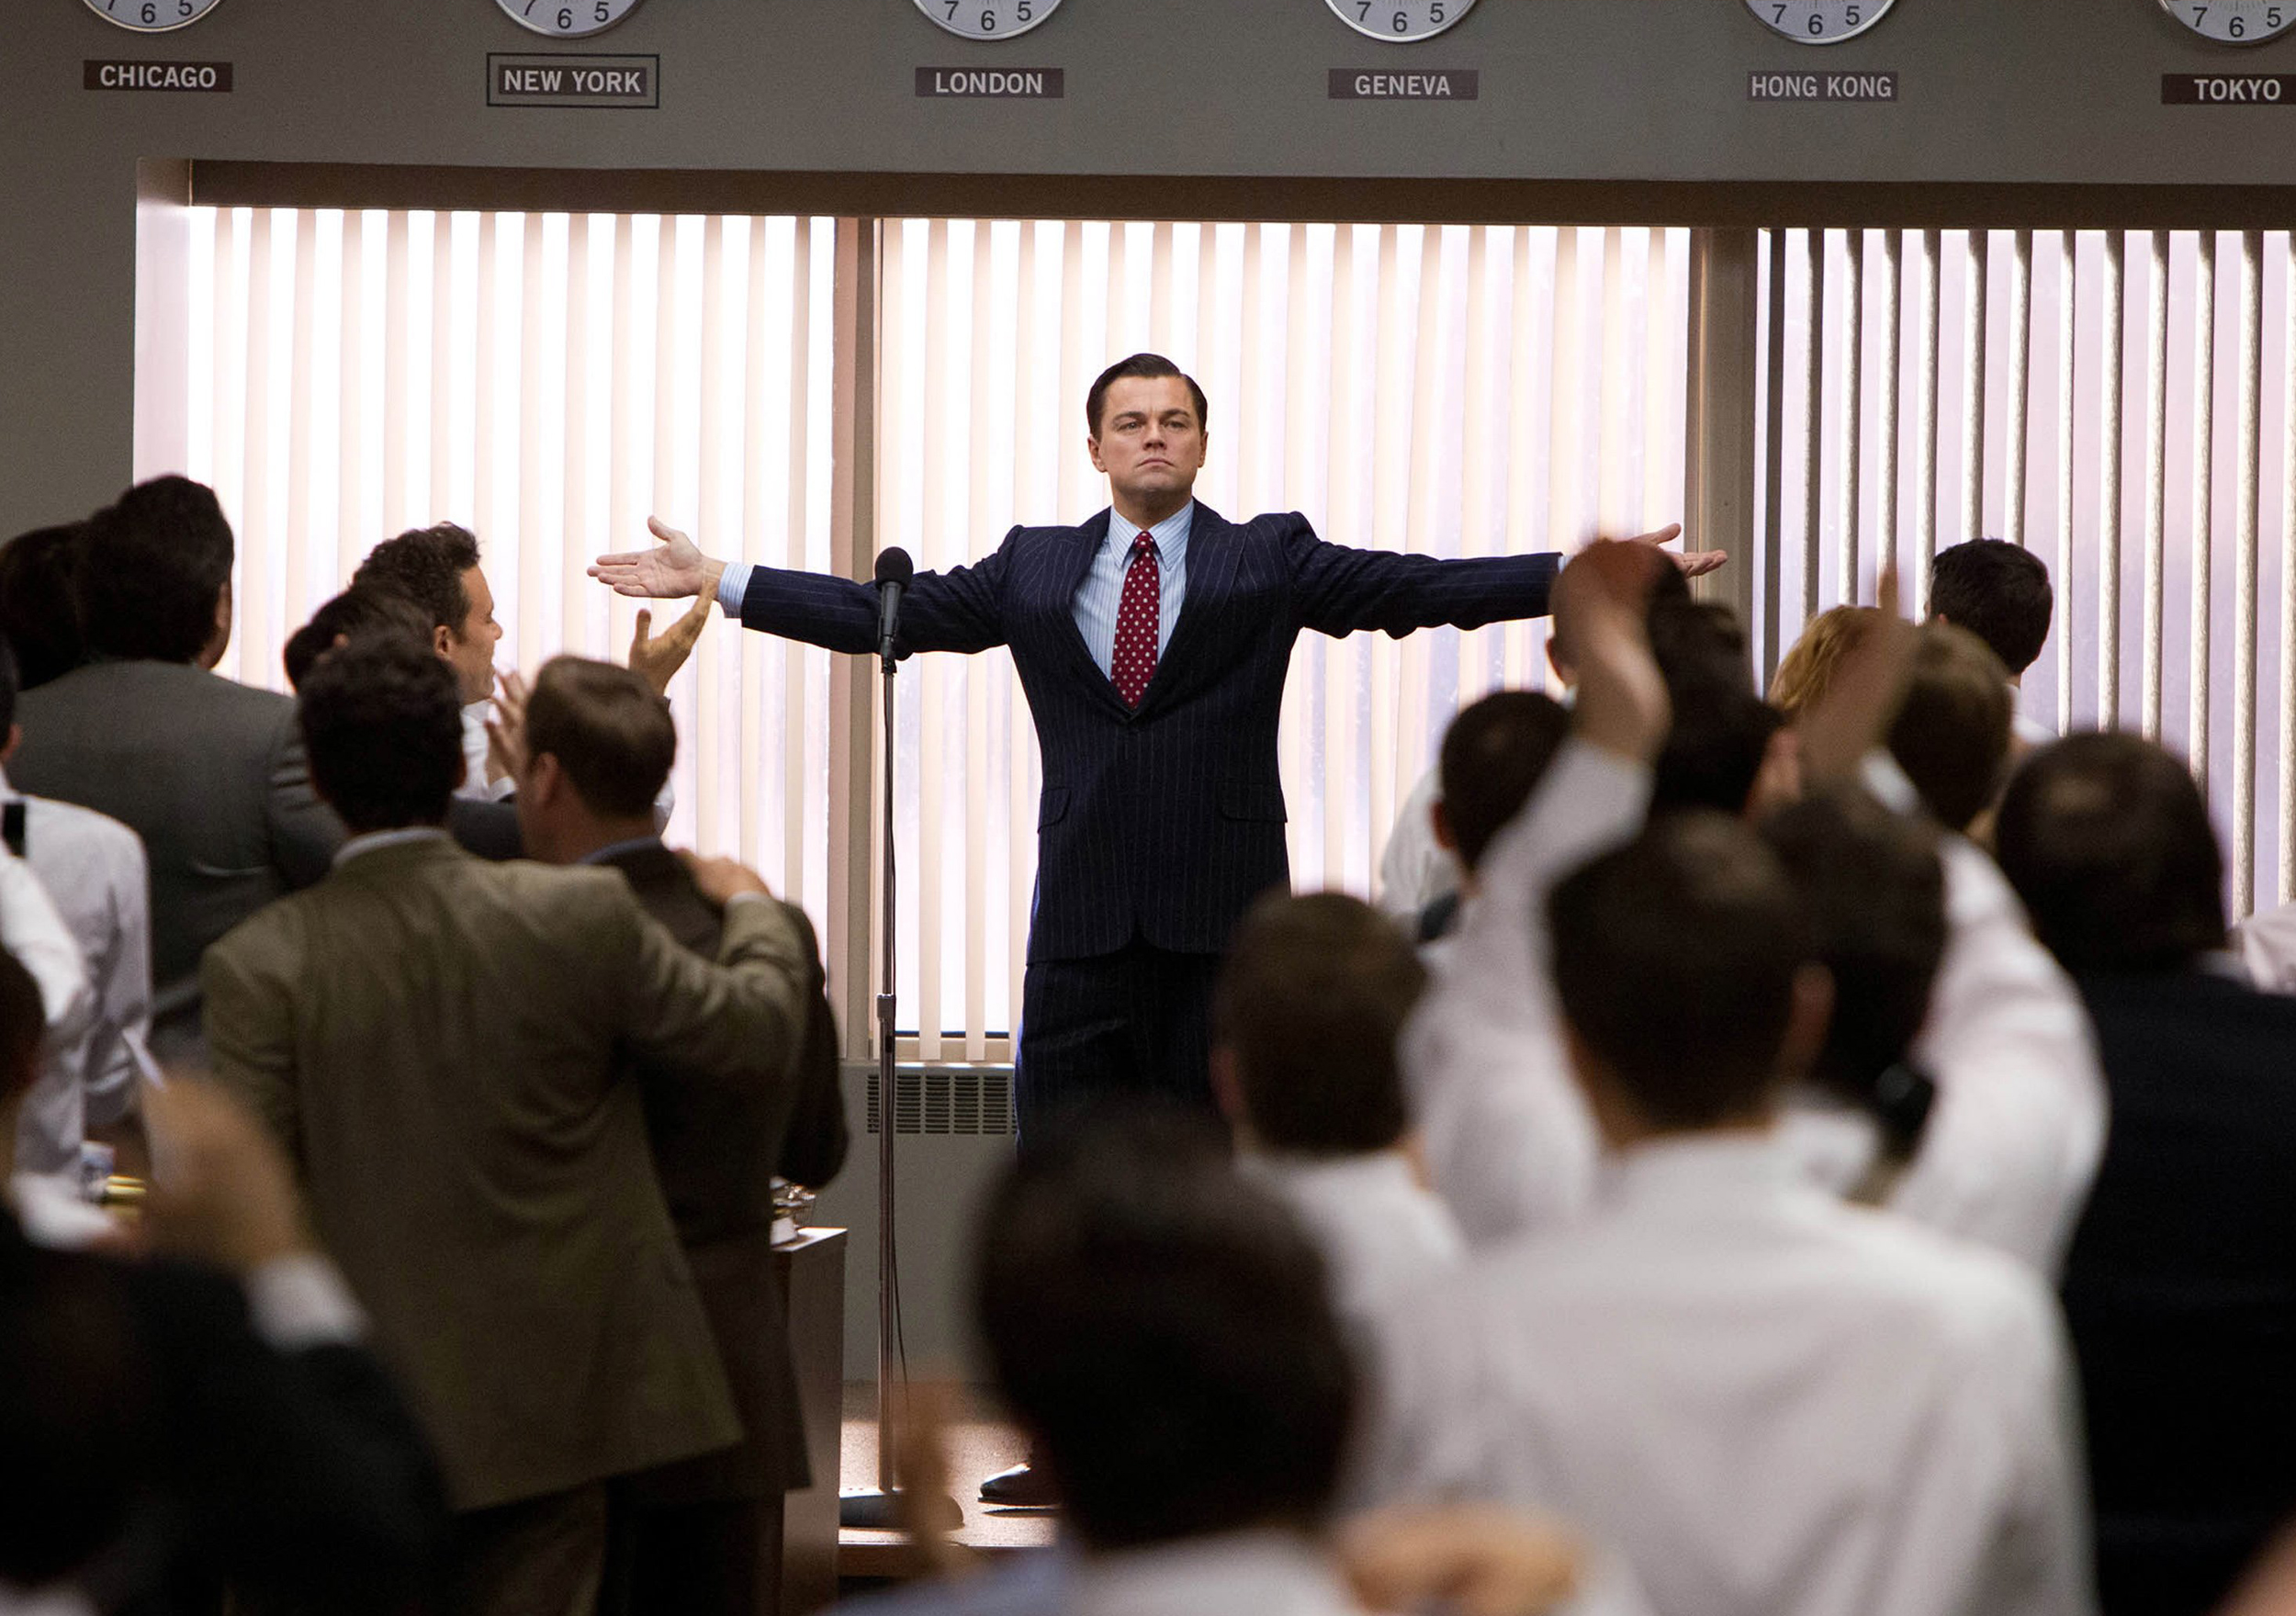 Leonardo DiCaprio portrays Jordan Belfort in a scene from